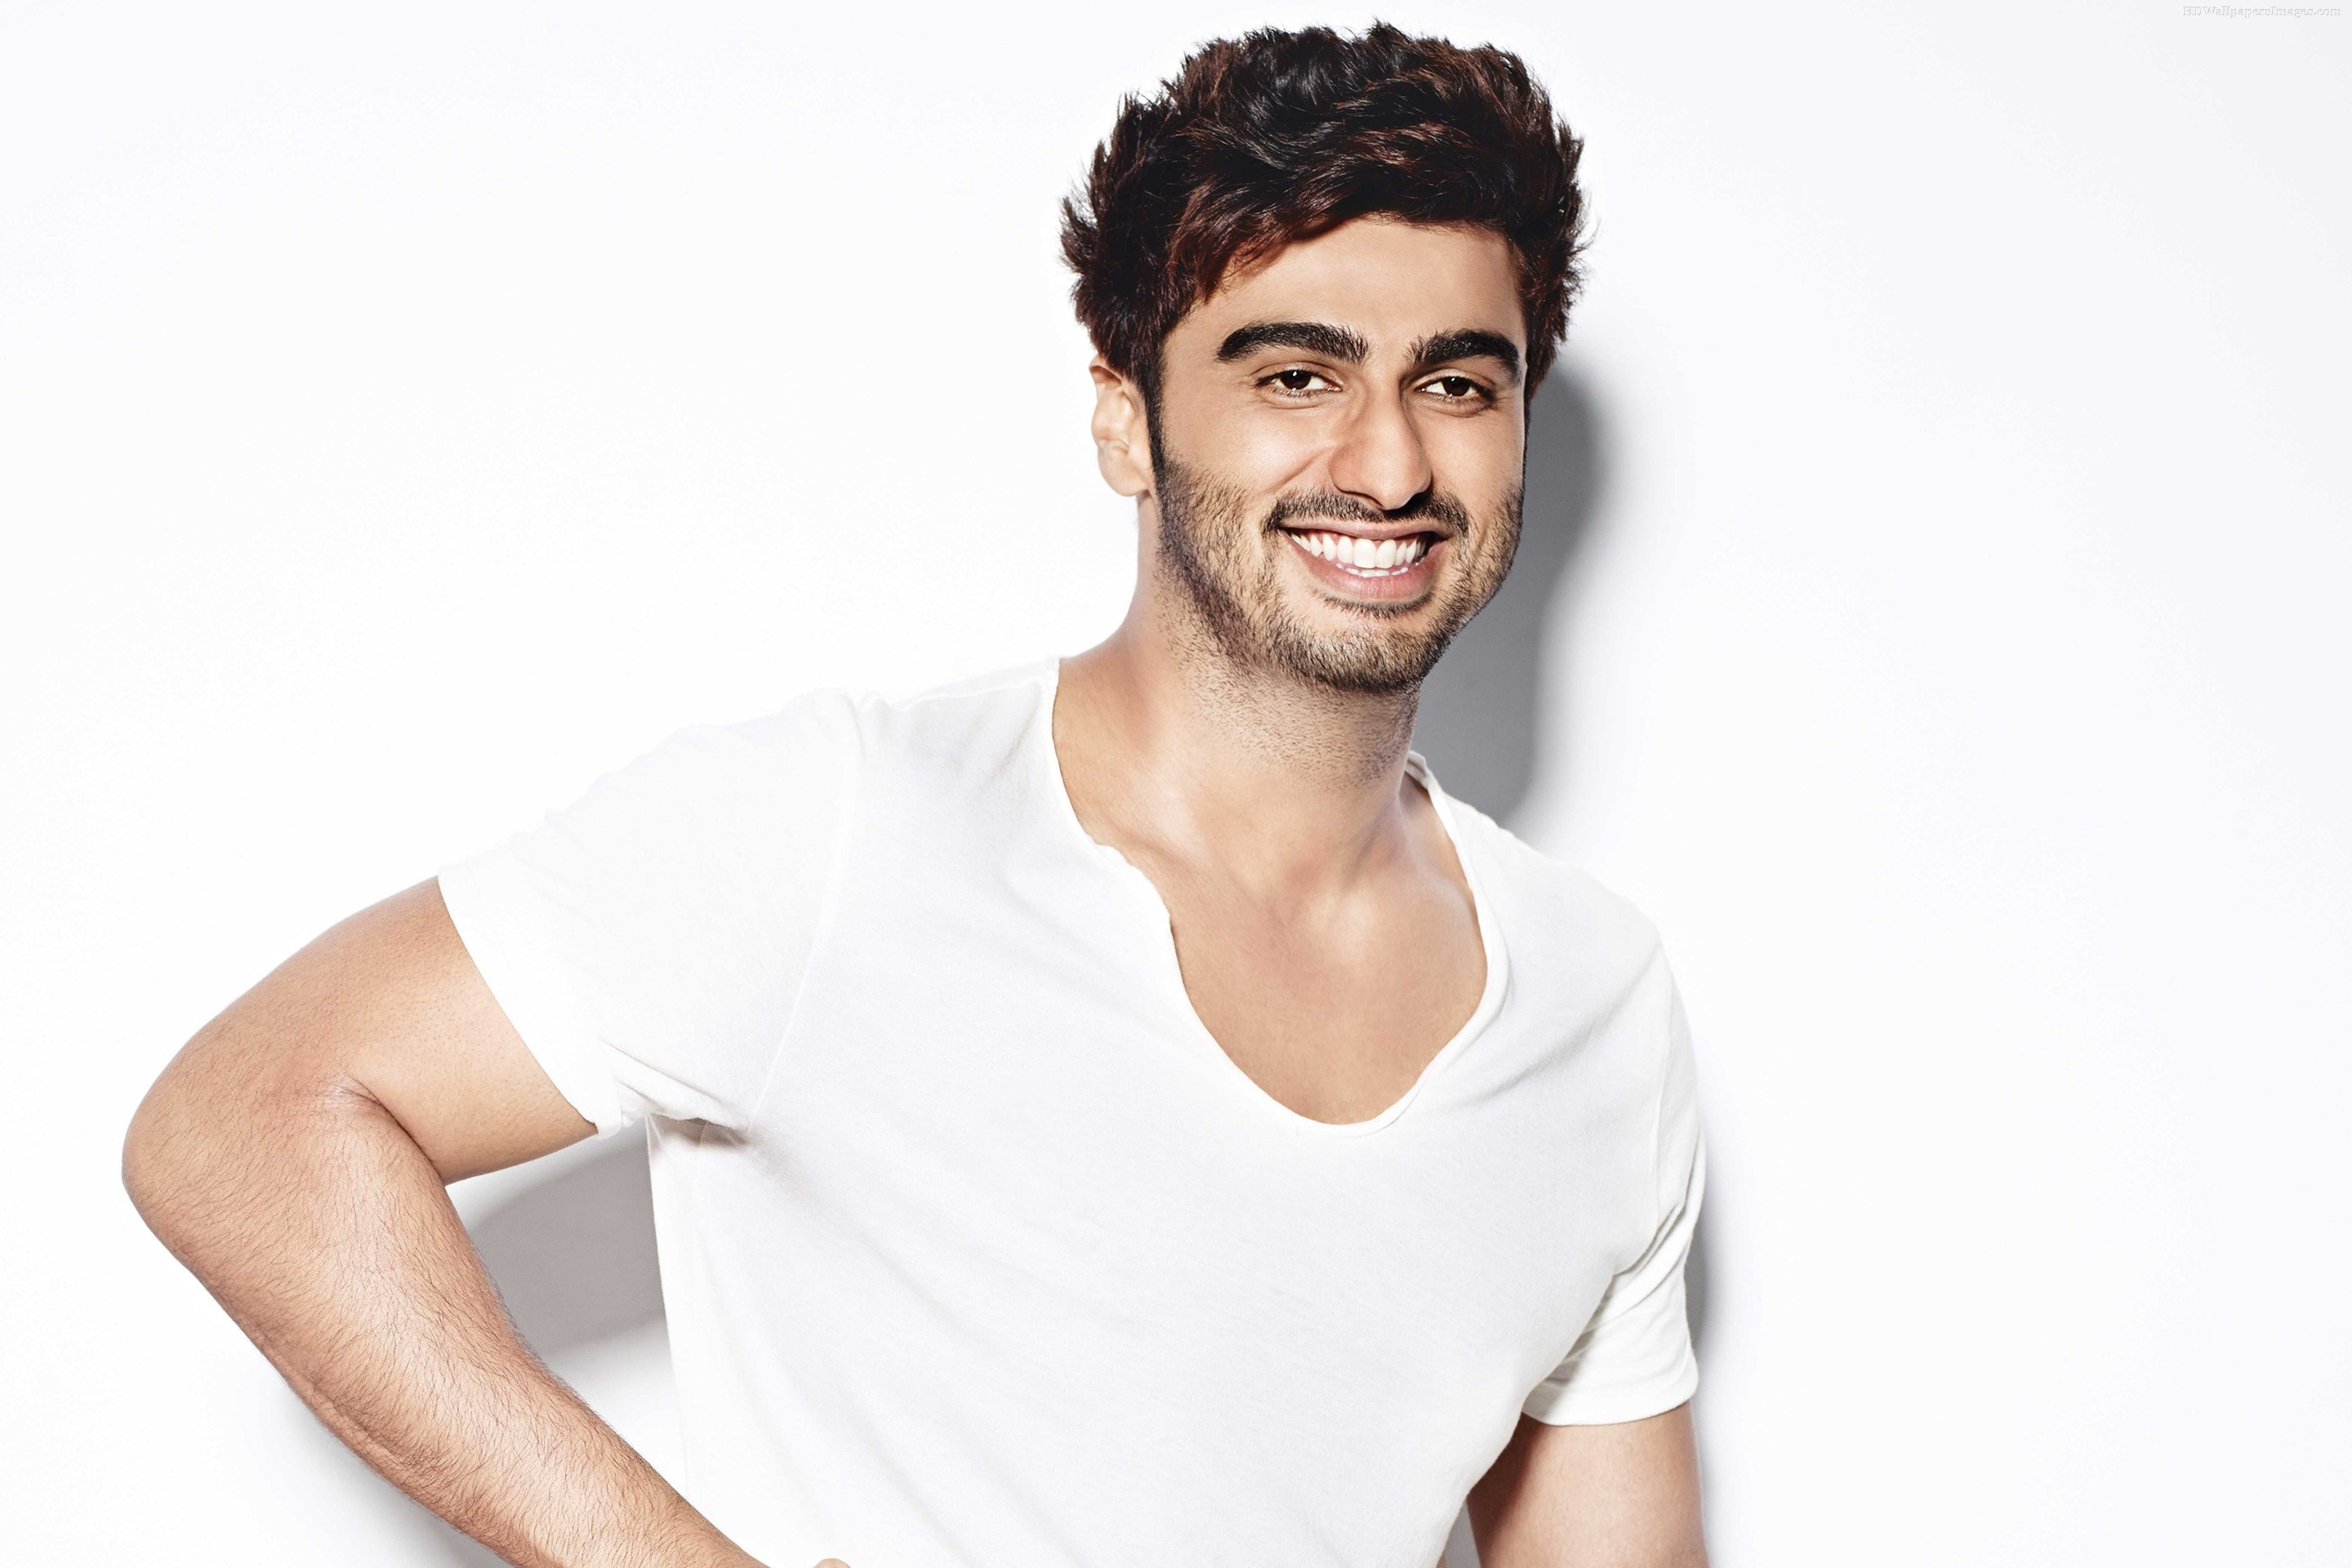 Arjun-Kapoor-HD-Wallpapers-White-Shirt-with-cute-smile